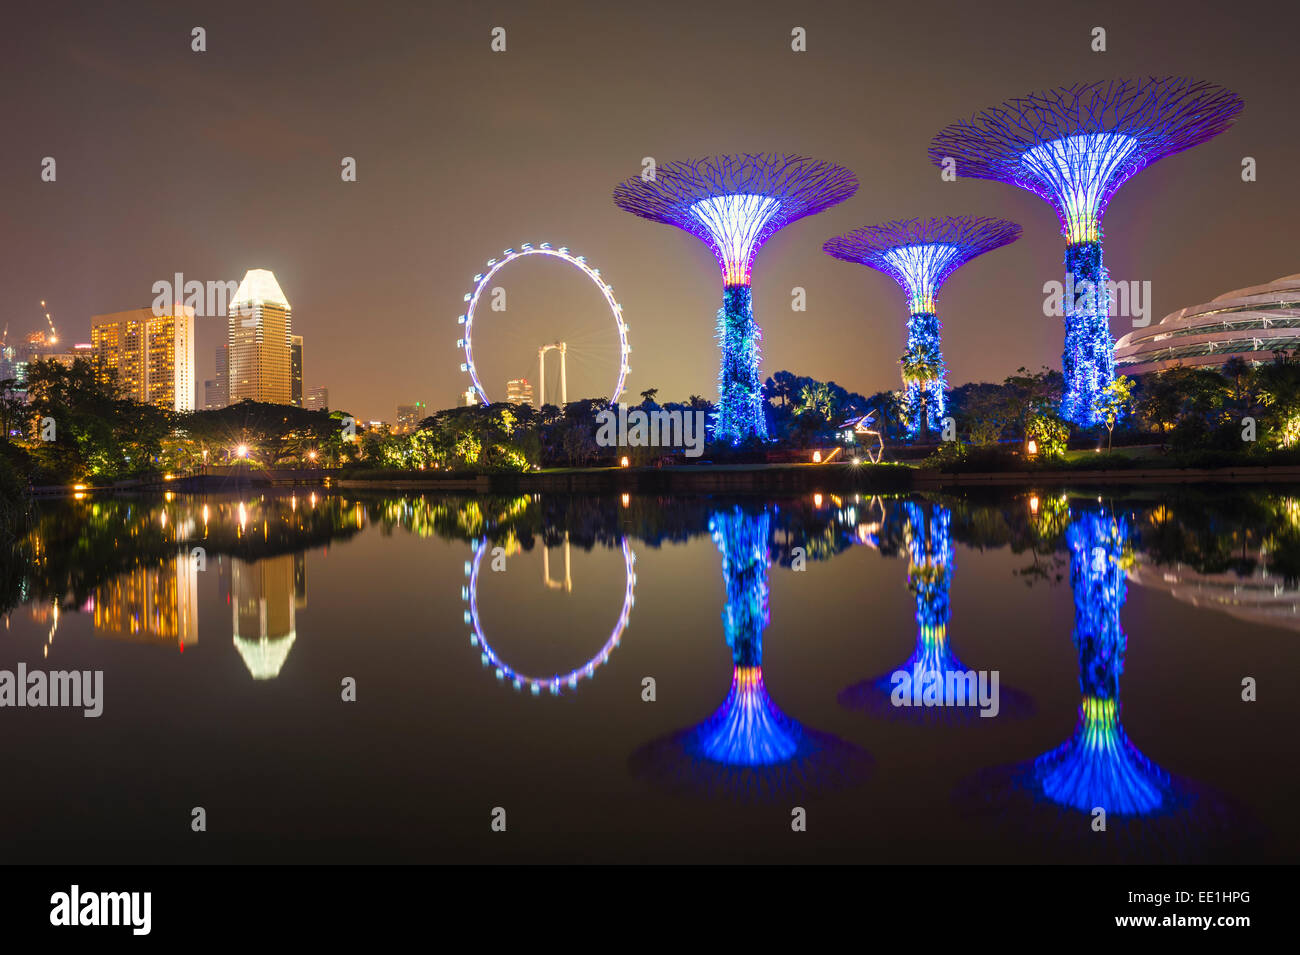 Gardens by the Bay reflecting in the water at night, Singapore, Southeast Asia, Asia - Stock Image